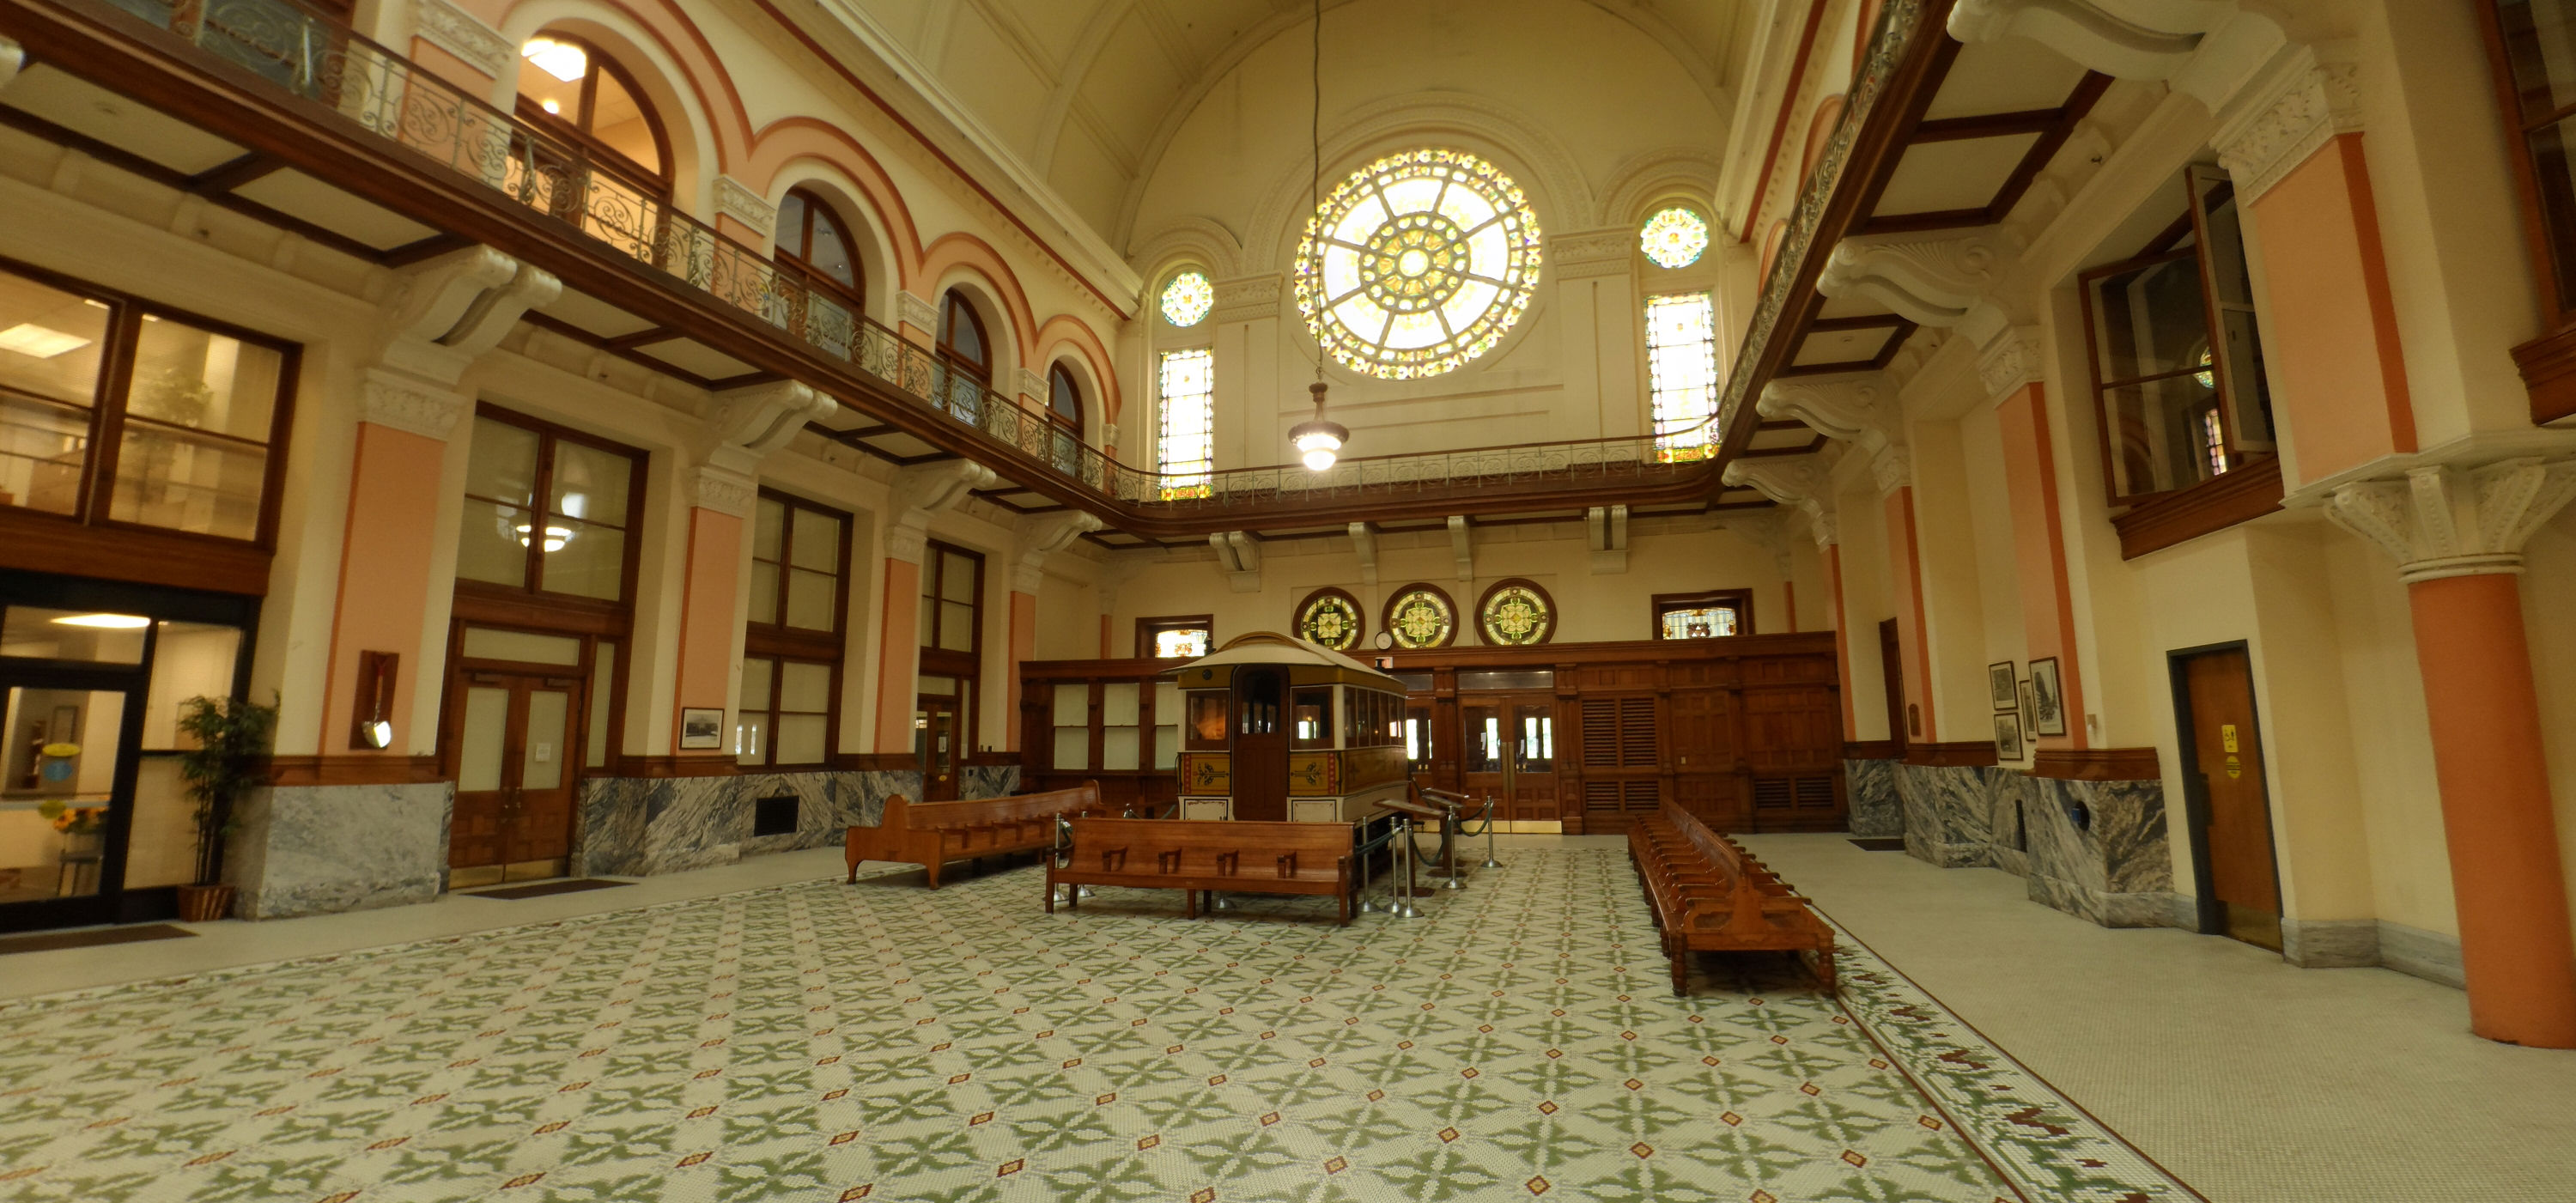 Restored interior of Union Station, now TARC headquarters (image from Mapio)